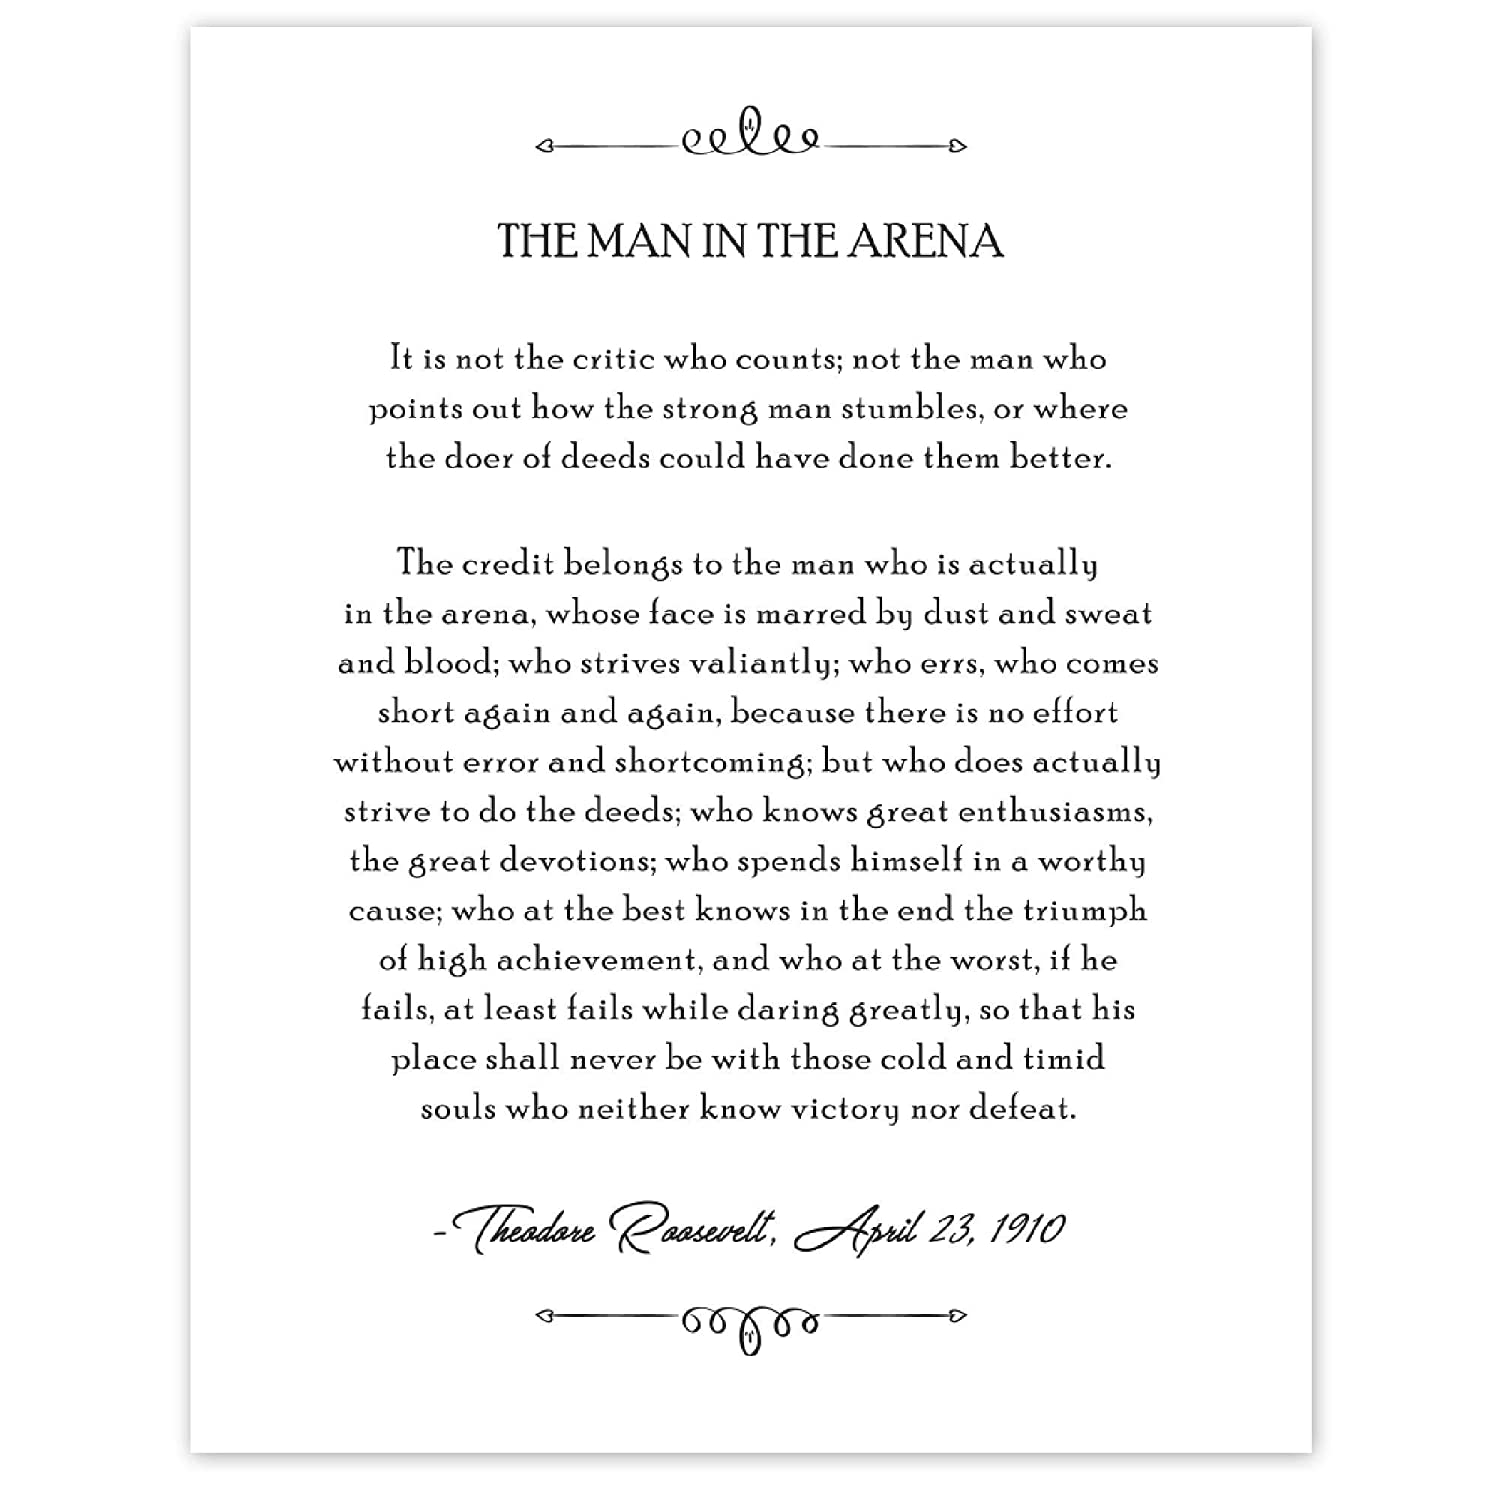 B&W Theodore Roosevelt, Man in the Arena, Book Quote Poster Prints, Set of 1 (11x14) Unframed Photo, Wall Art Decor Gifts Under 15 for Home, Office, School, College Student, Teacher, Literary Fan